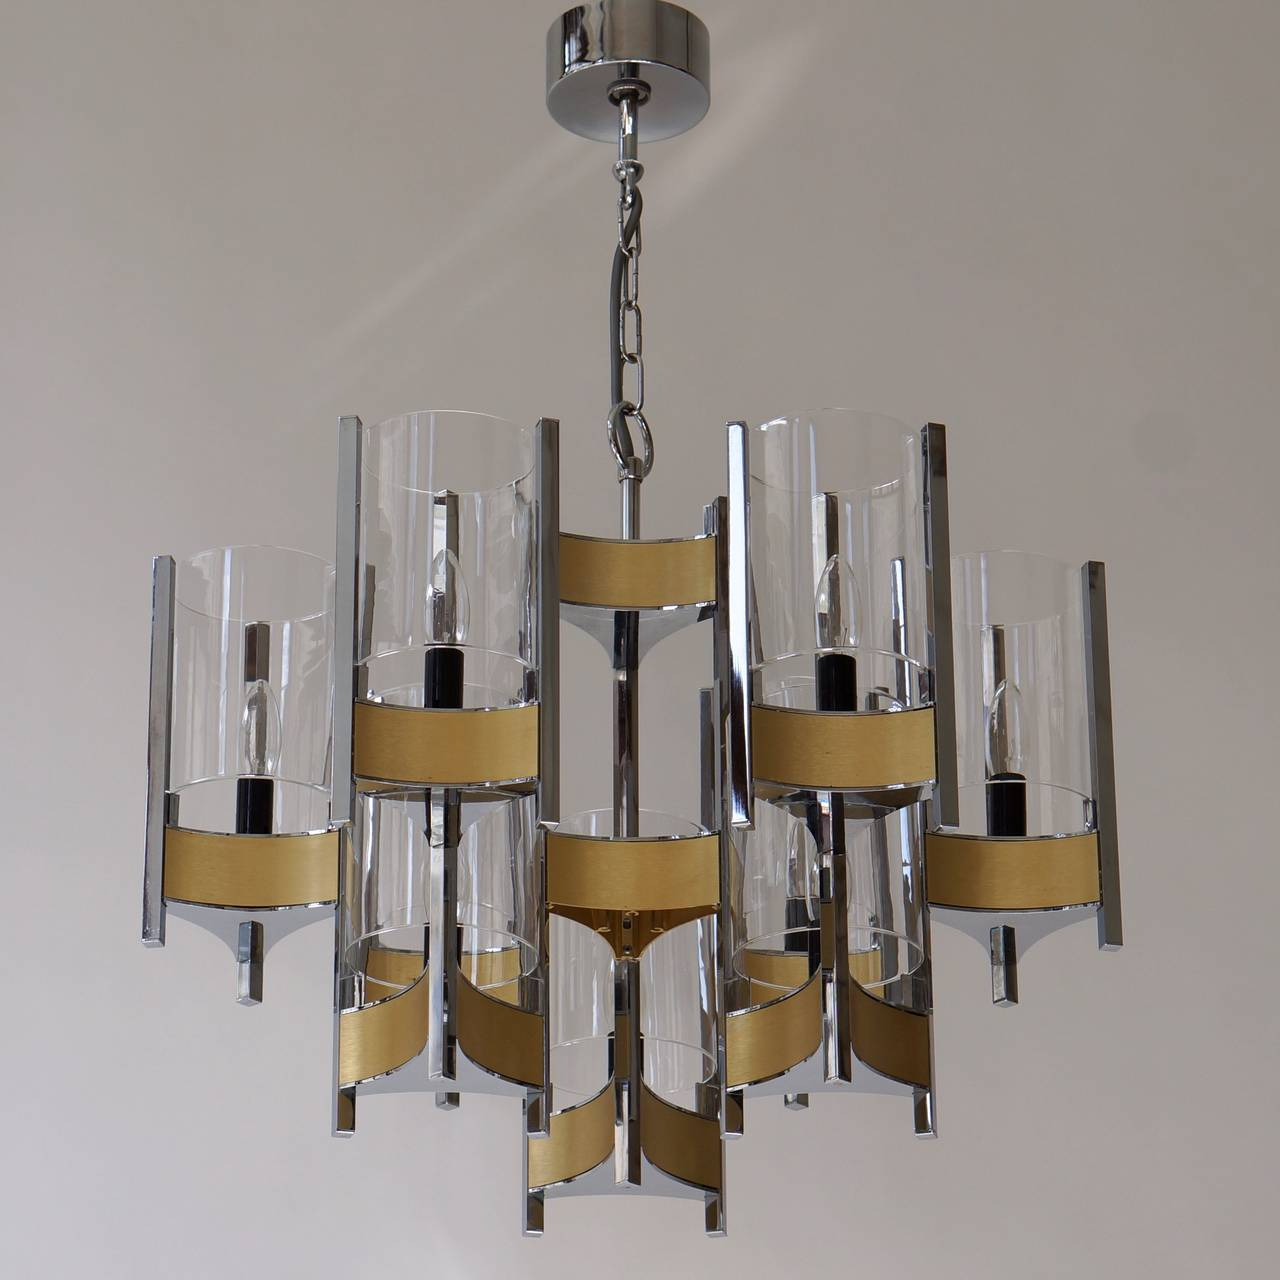 Set of Four Sculptural Sciolari Chandeliers For Sale 1